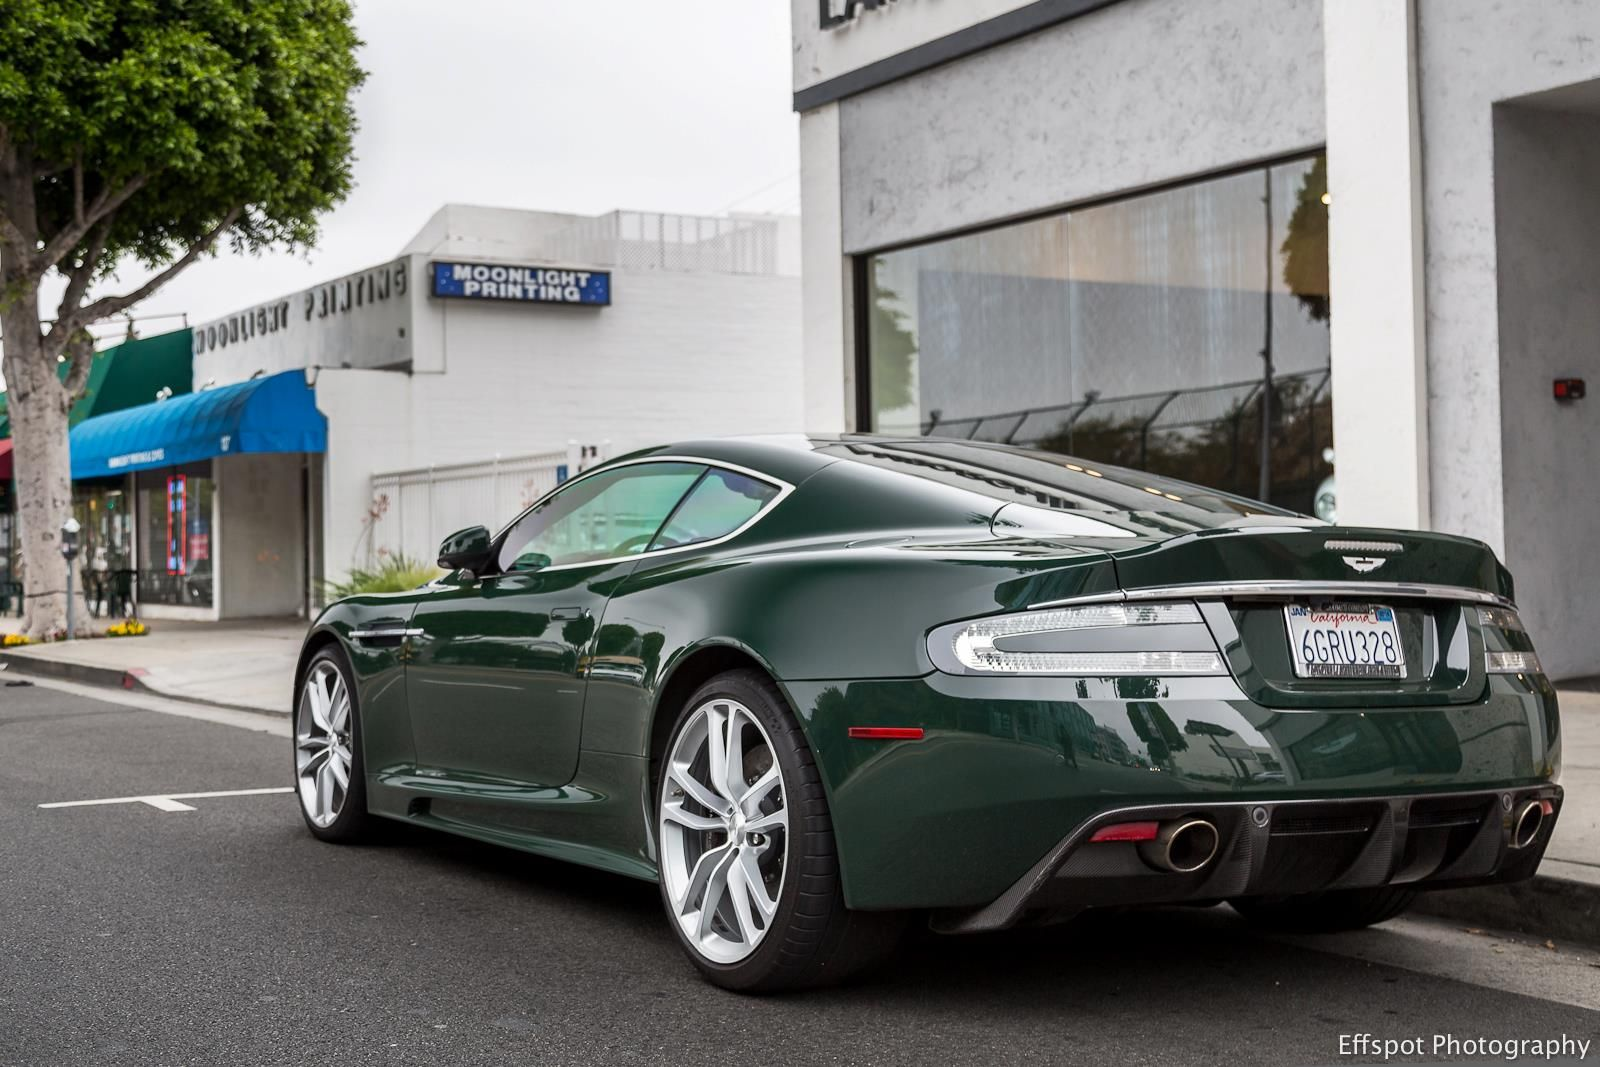 aston martin dbs british racing green | projects to try | pinterest